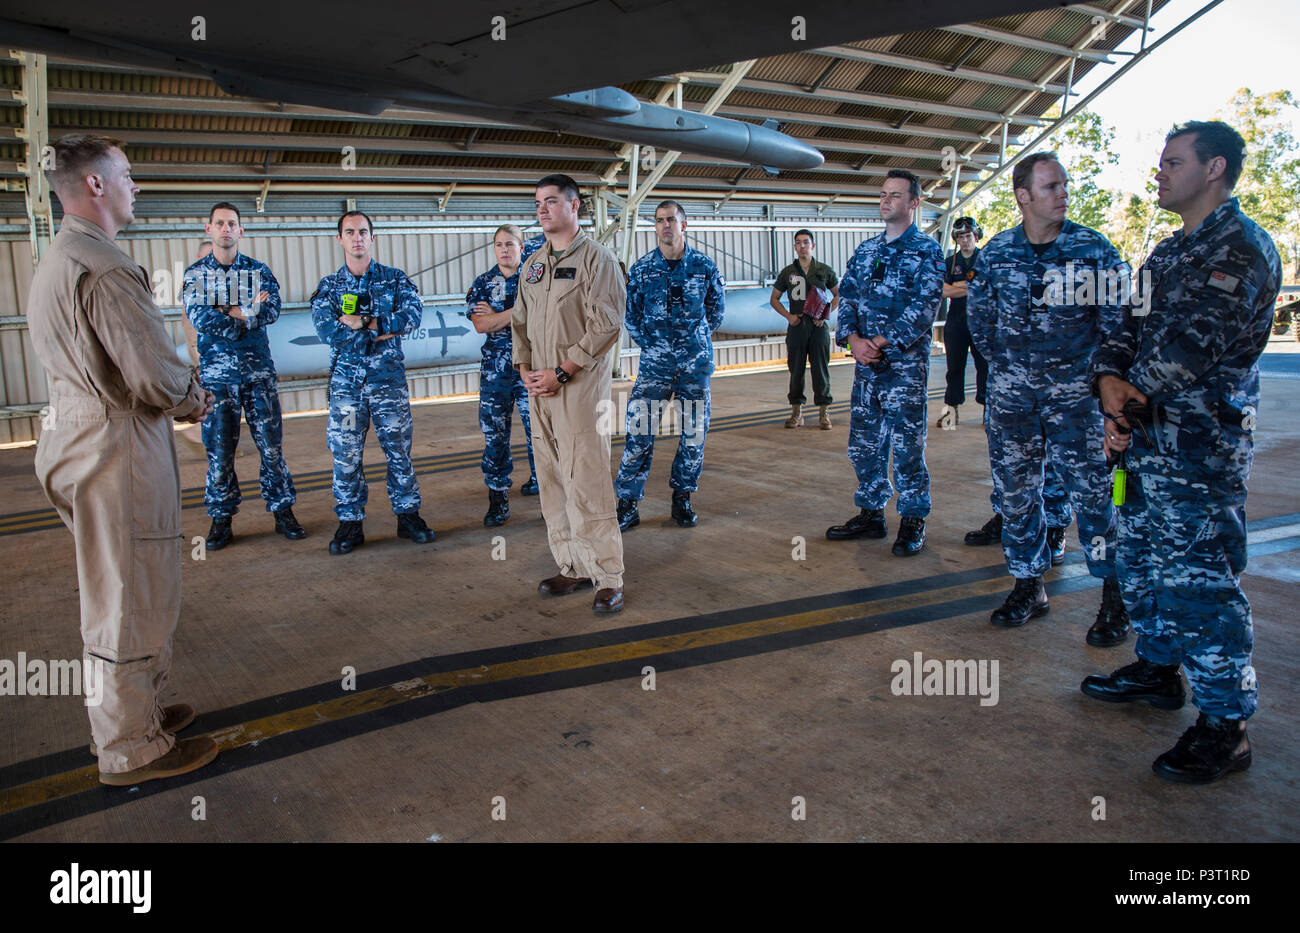 U.S Marine Corps Cpl. Jesse Meyers, a power liner with Marine Fighter Attack Squadron (VMFA) 122, gives a familiarization class to Cpl. Michael Barton, an aircraft rescue firefighter specialist with Marine Wing Support Squadron (MWSS) 171, and the No. 17 Squadron Fire and Rescue team at Royal Australian Air Force Base Tindal, Australia, July 28, 2016. Barton is a liaison between VMFA-122 and No. 17 Squadron firefighters in case of emergencies involving the flying squadron's aircraft during Exercise Pitch Black 2016. The familiarization class covered the basic dos and don'ts of operating around - Stock Image